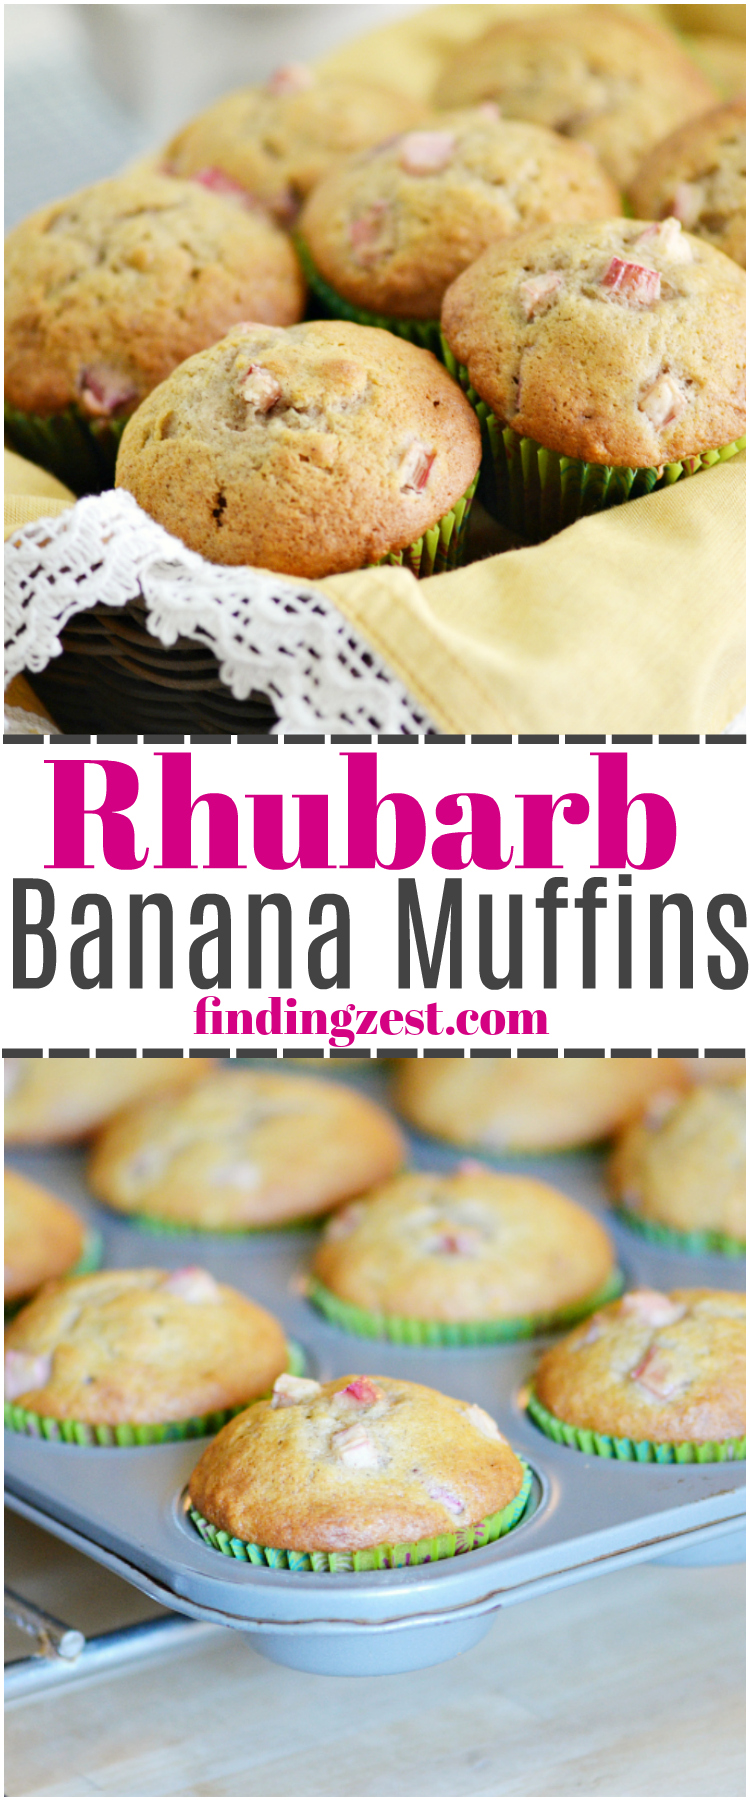 These homemade Rhubarb Banana Muffins offer the tartness of rhubarb and sweetness of banana in every delicious bite! Enjoy rhubarb for breakfast with this fresh fruit muffin!